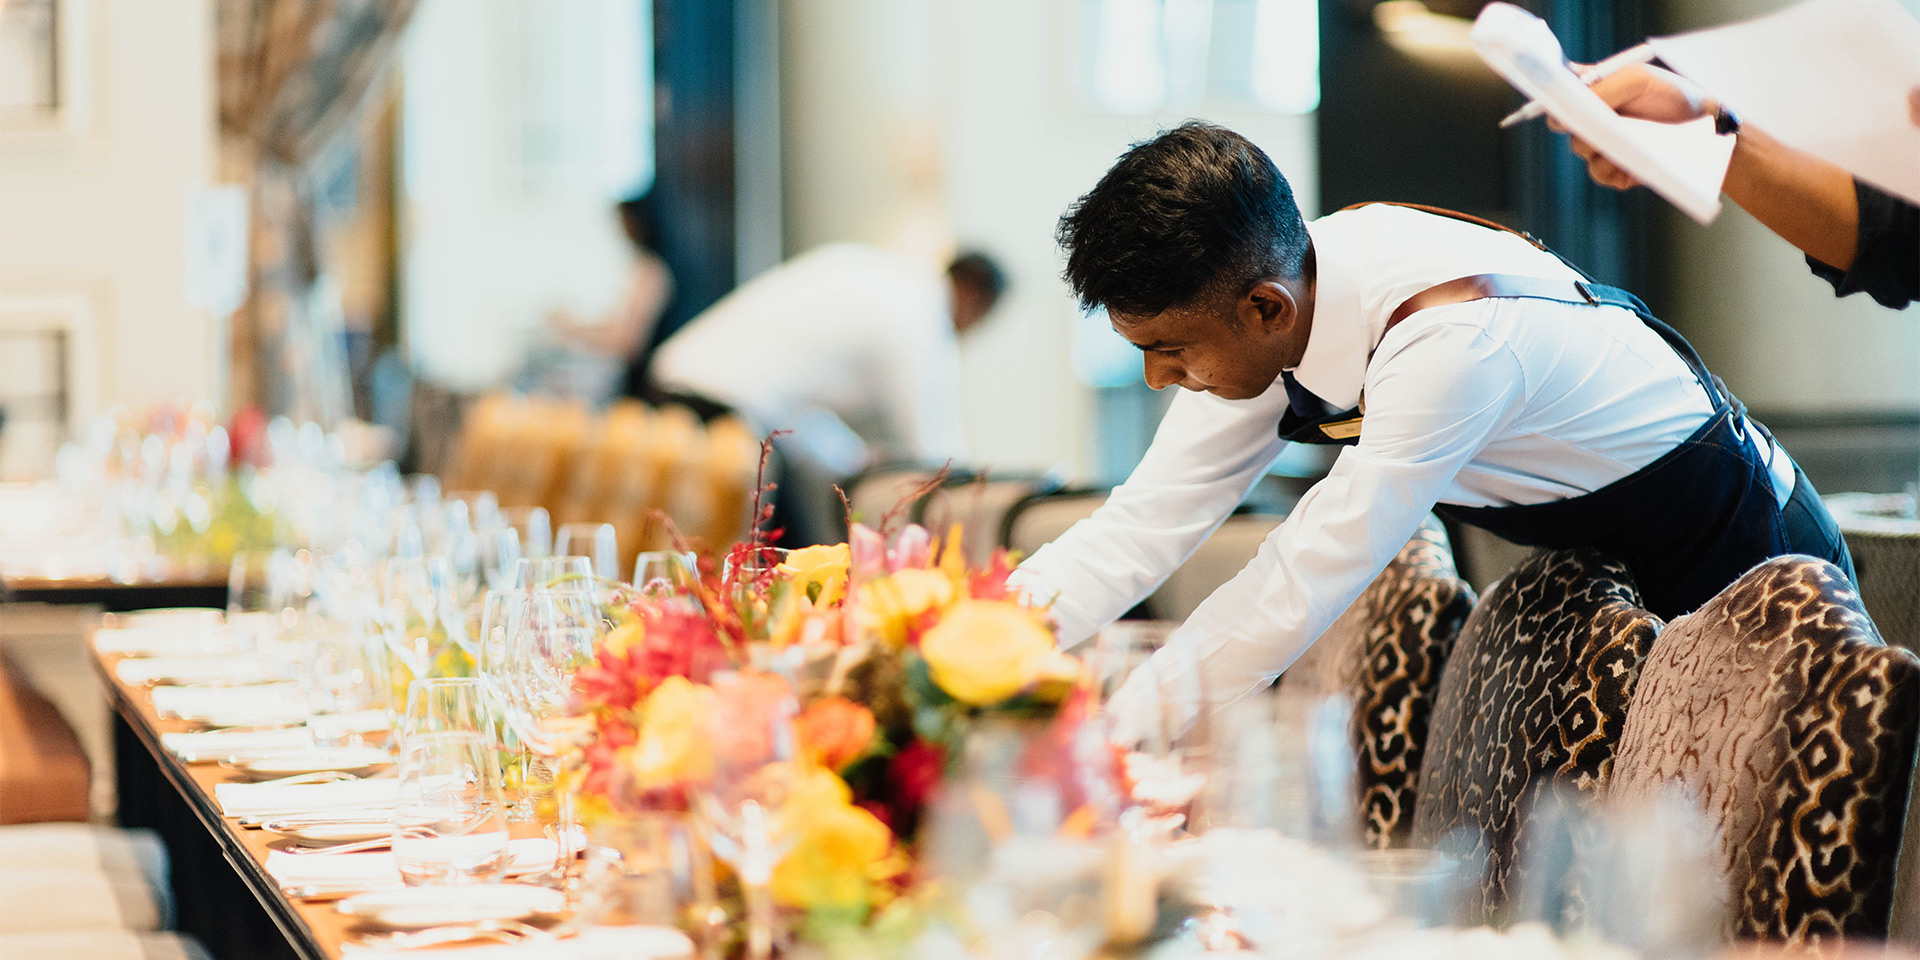 waiters setting a fancy table